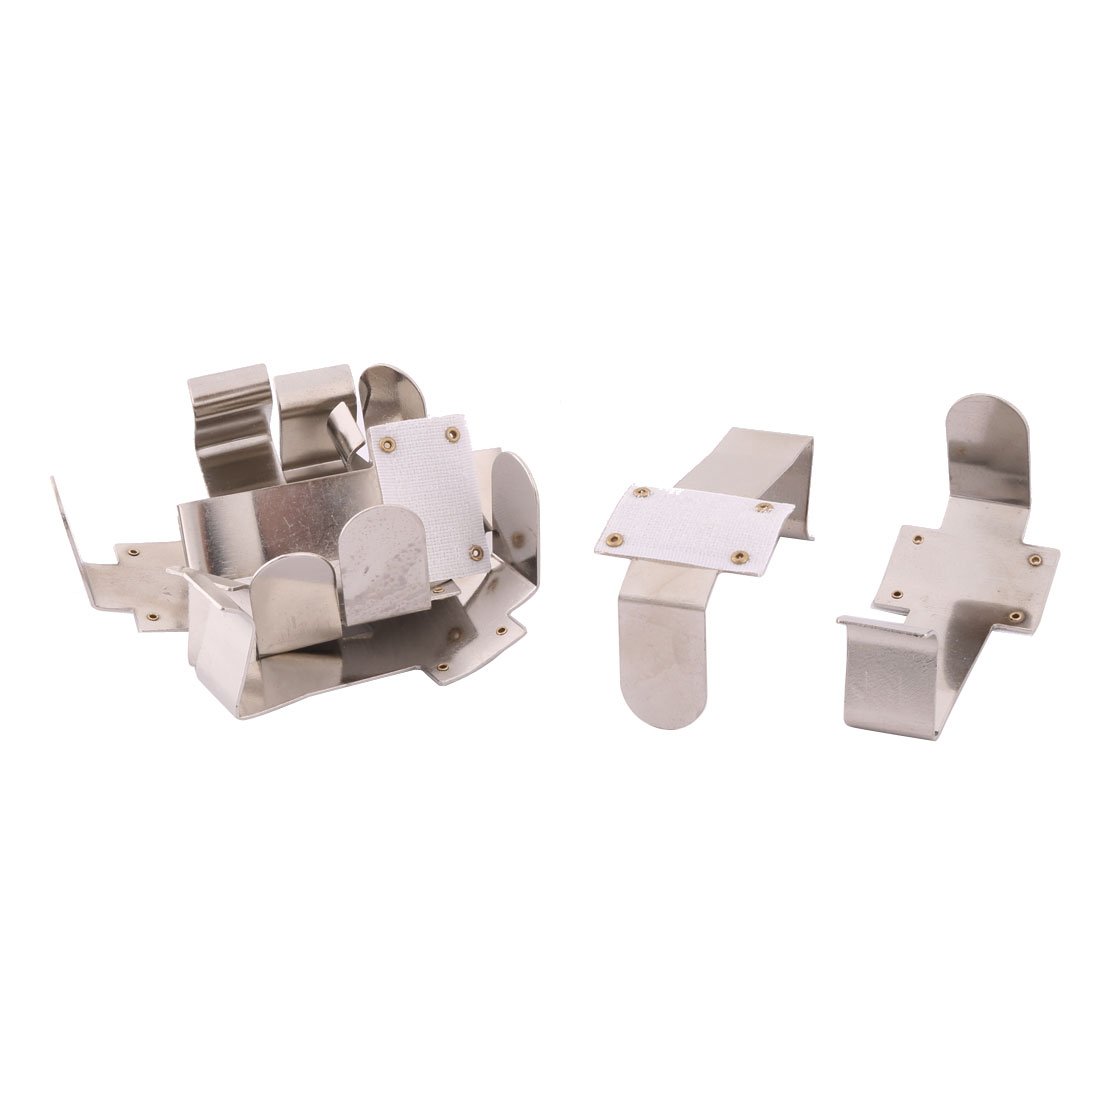 Dinning Table Metal Tablecloth Tablecover Clamp Clip Holder Silver Tone 8pcs